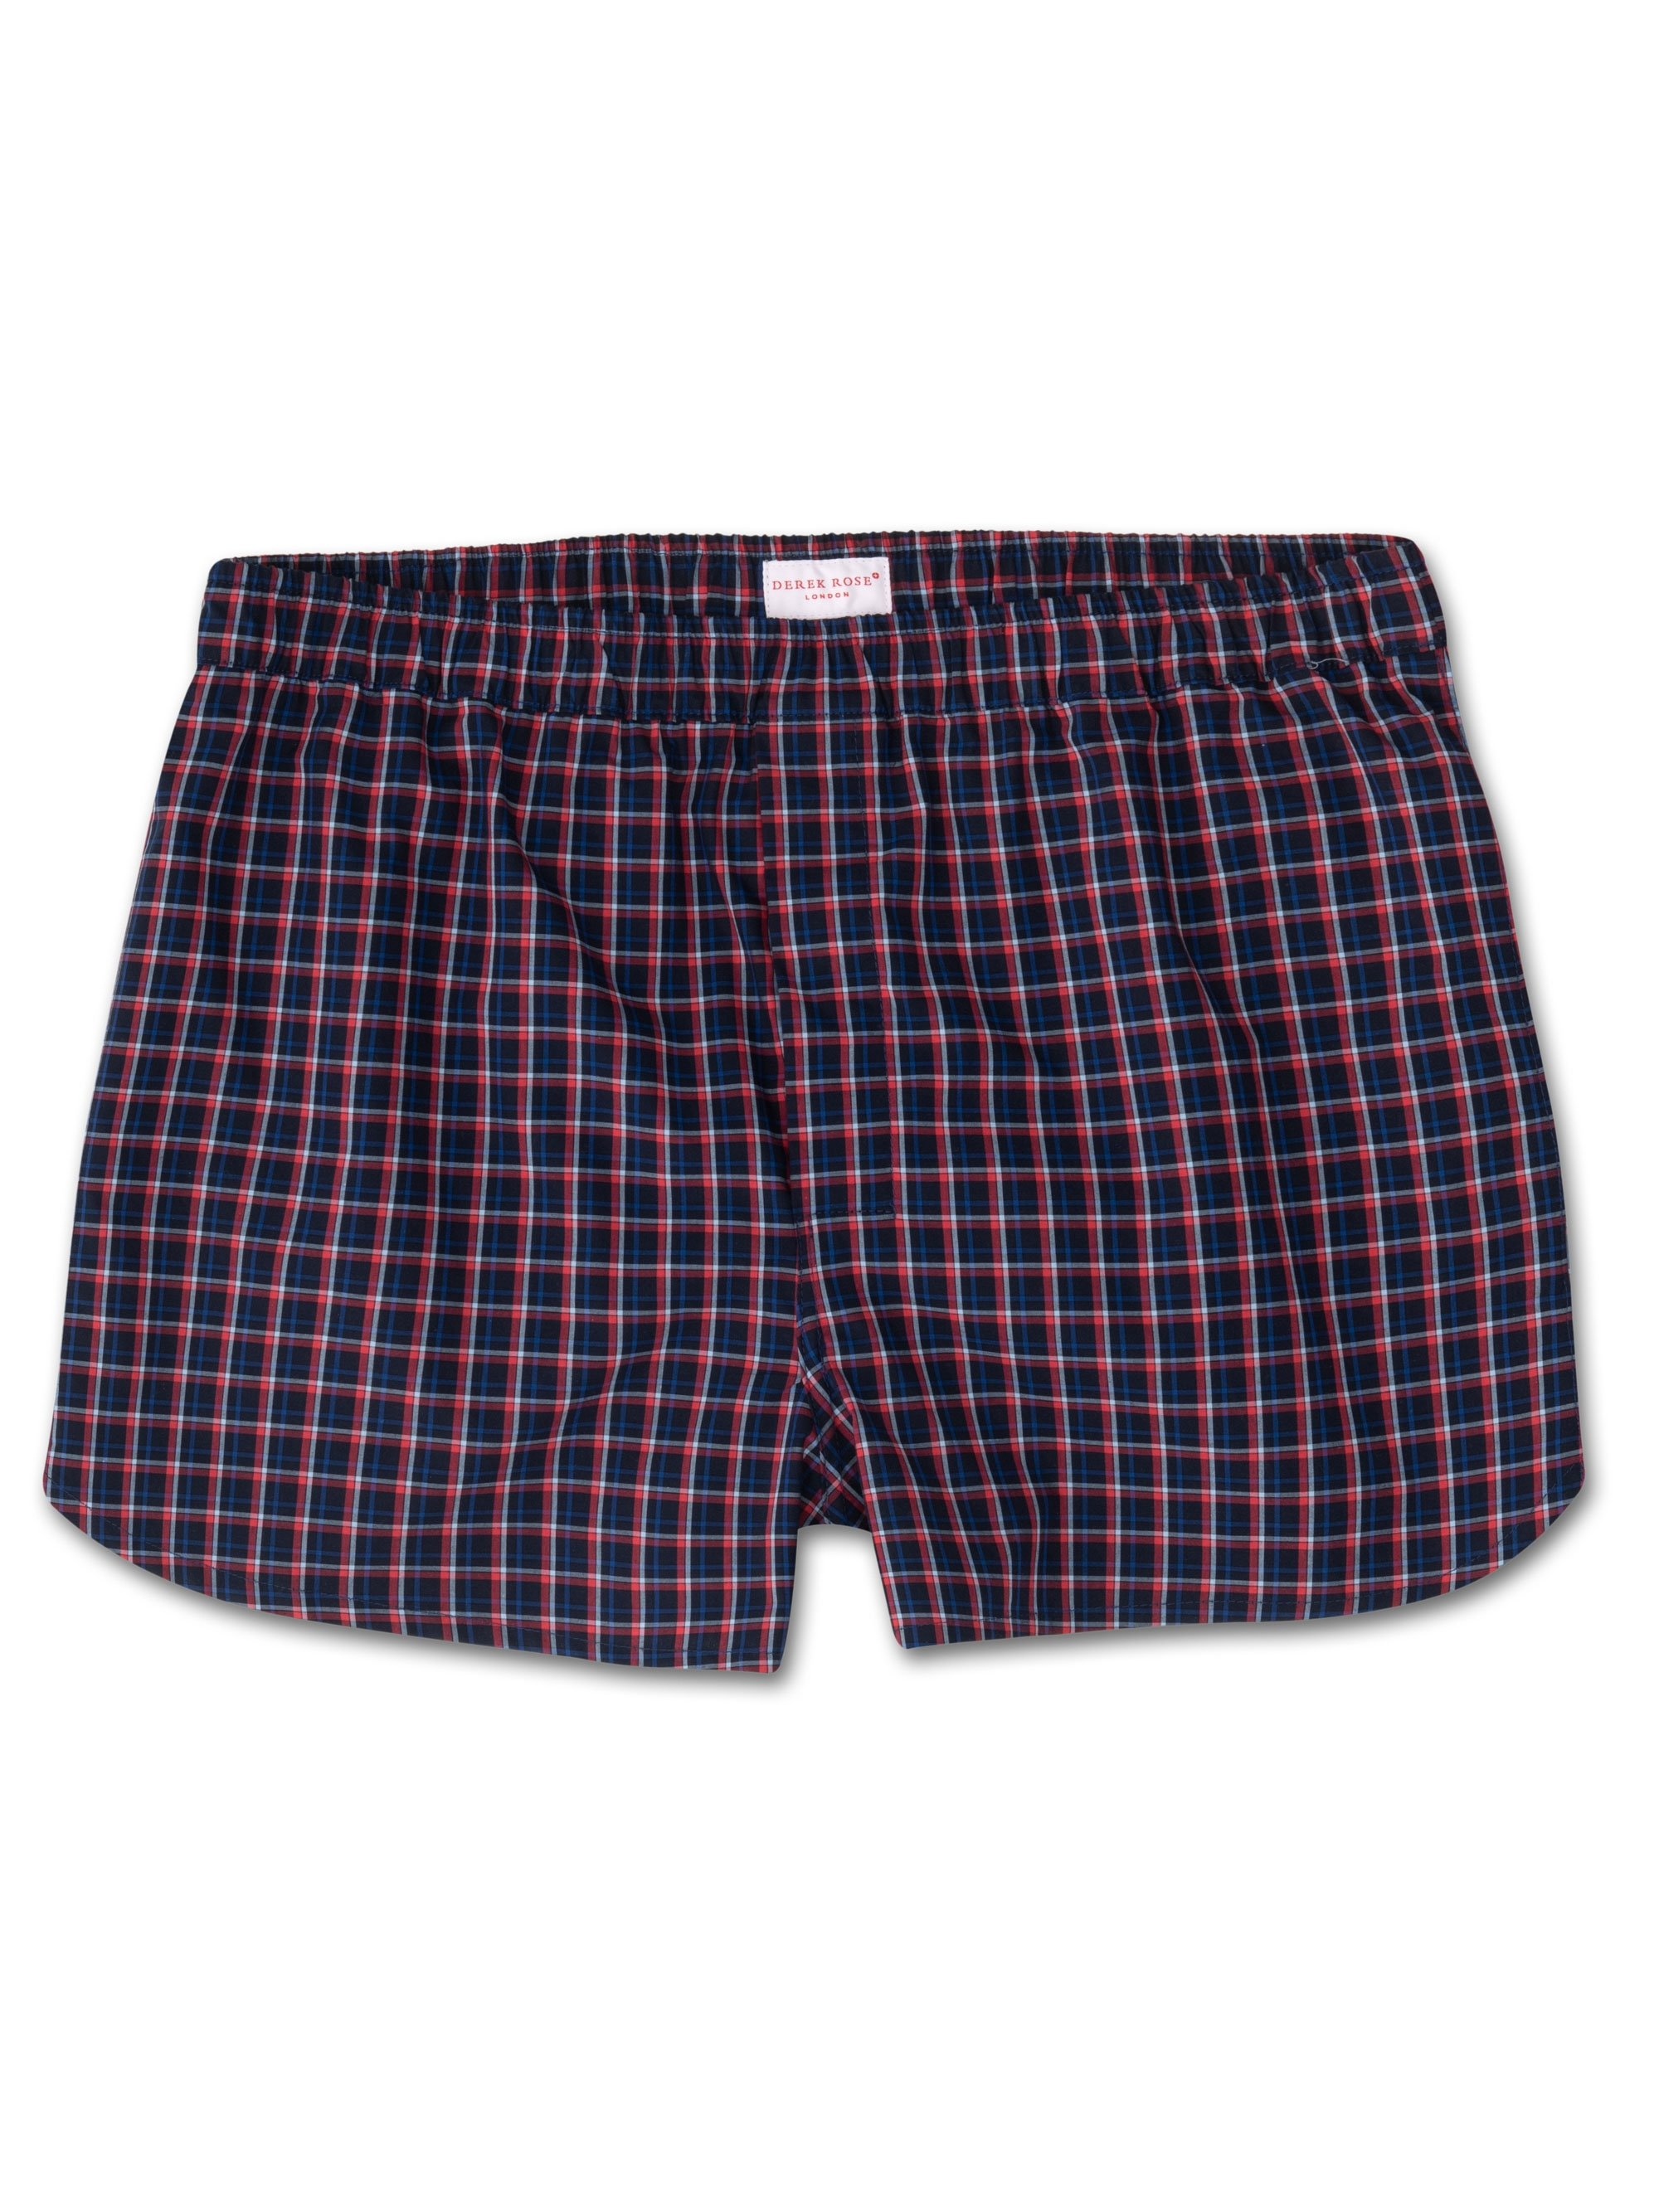 Men's Modern Fit Boxer Shorts Barker 22 Cotton Check Navy